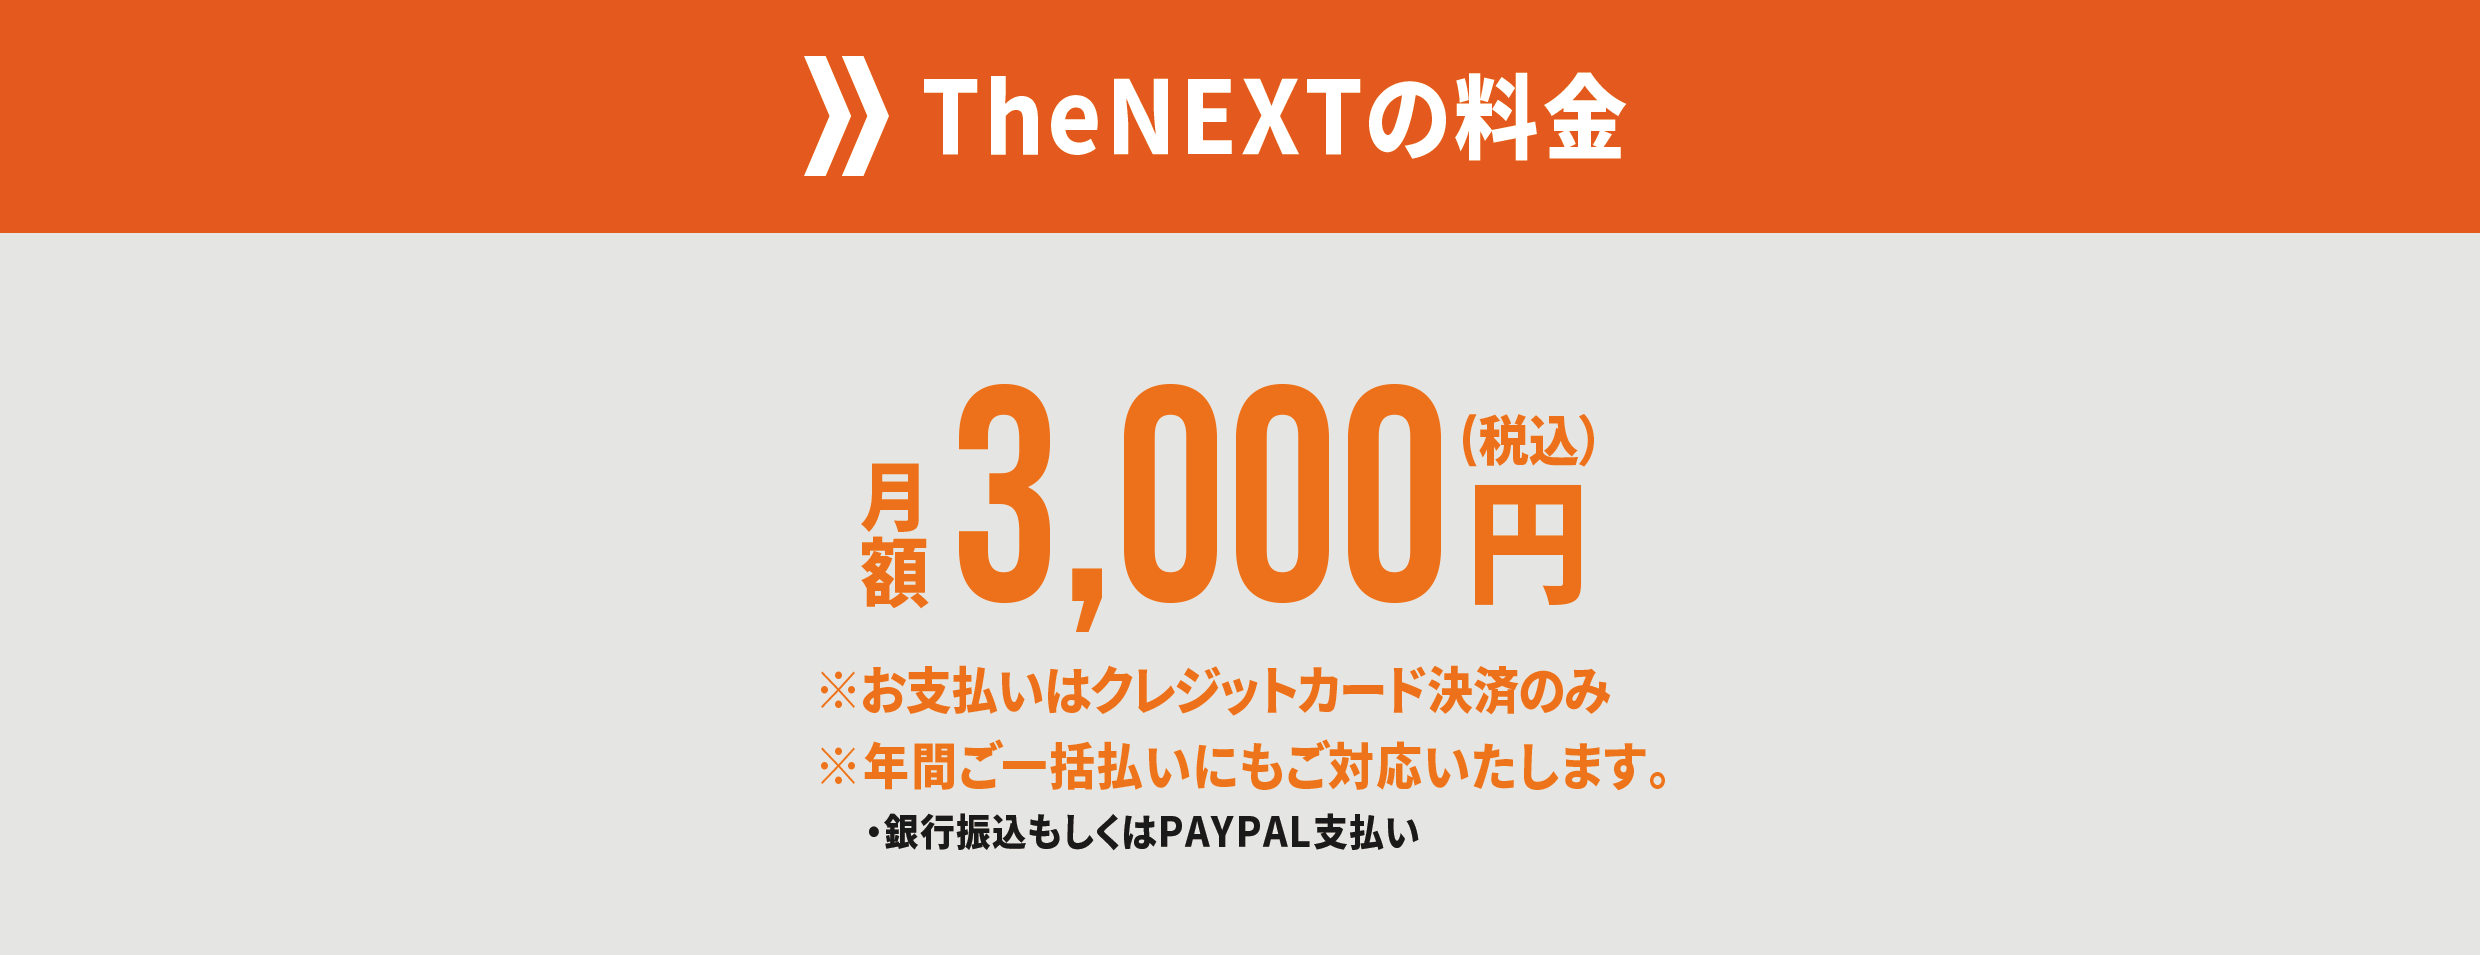 TheNEXTの料金